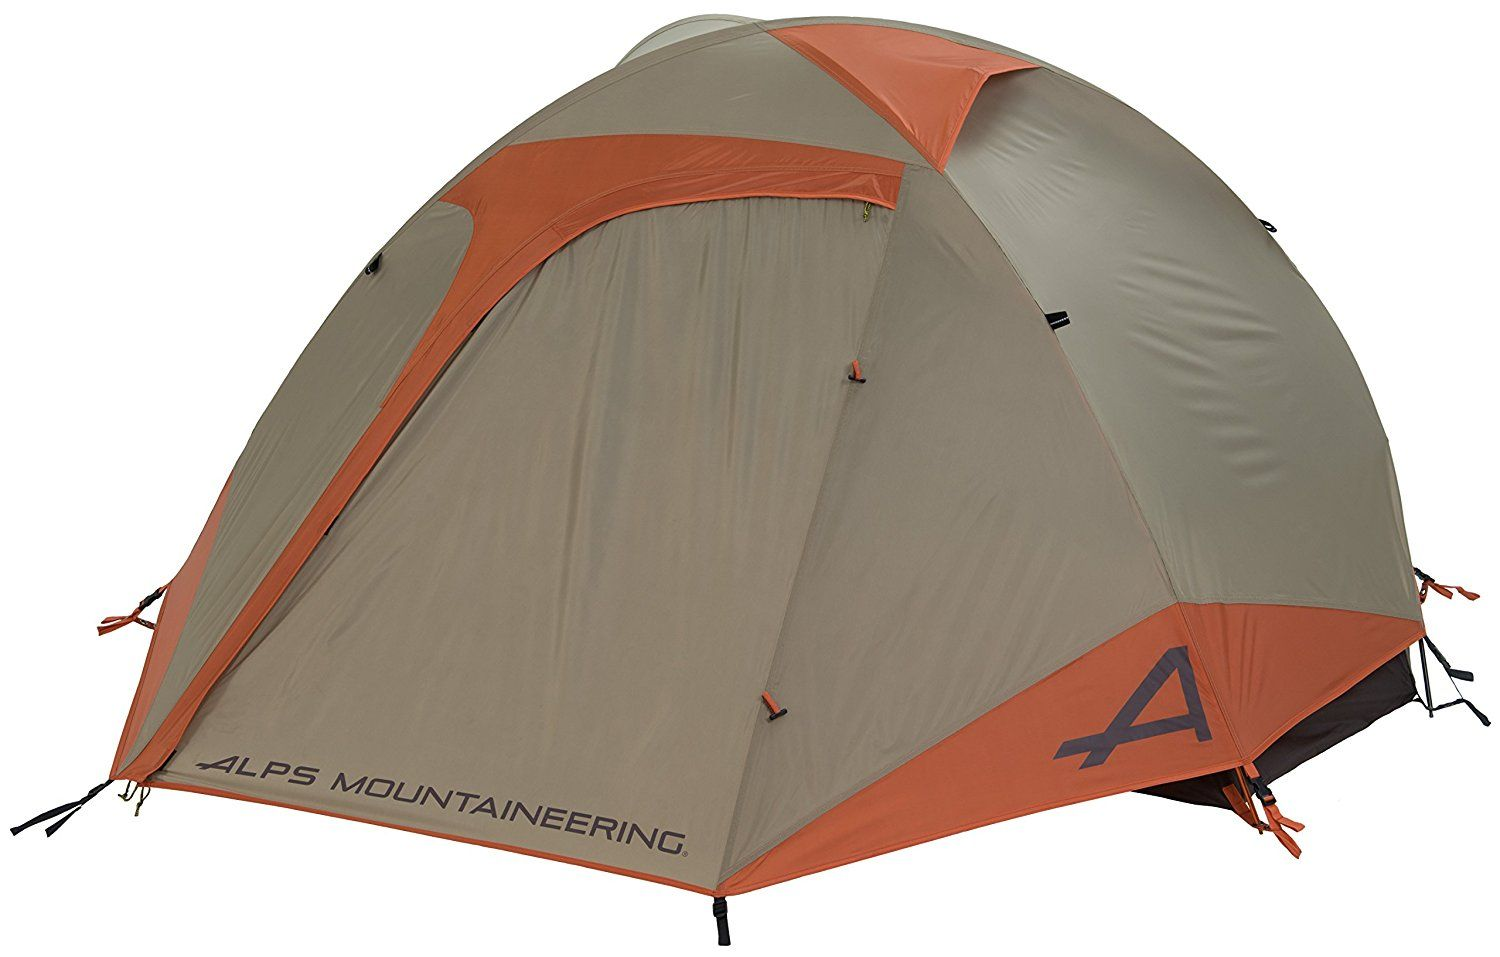 6f4fd35d8 ALPS Mountaineering 5232655 Gradient 2 Person Backpacking Tent ...